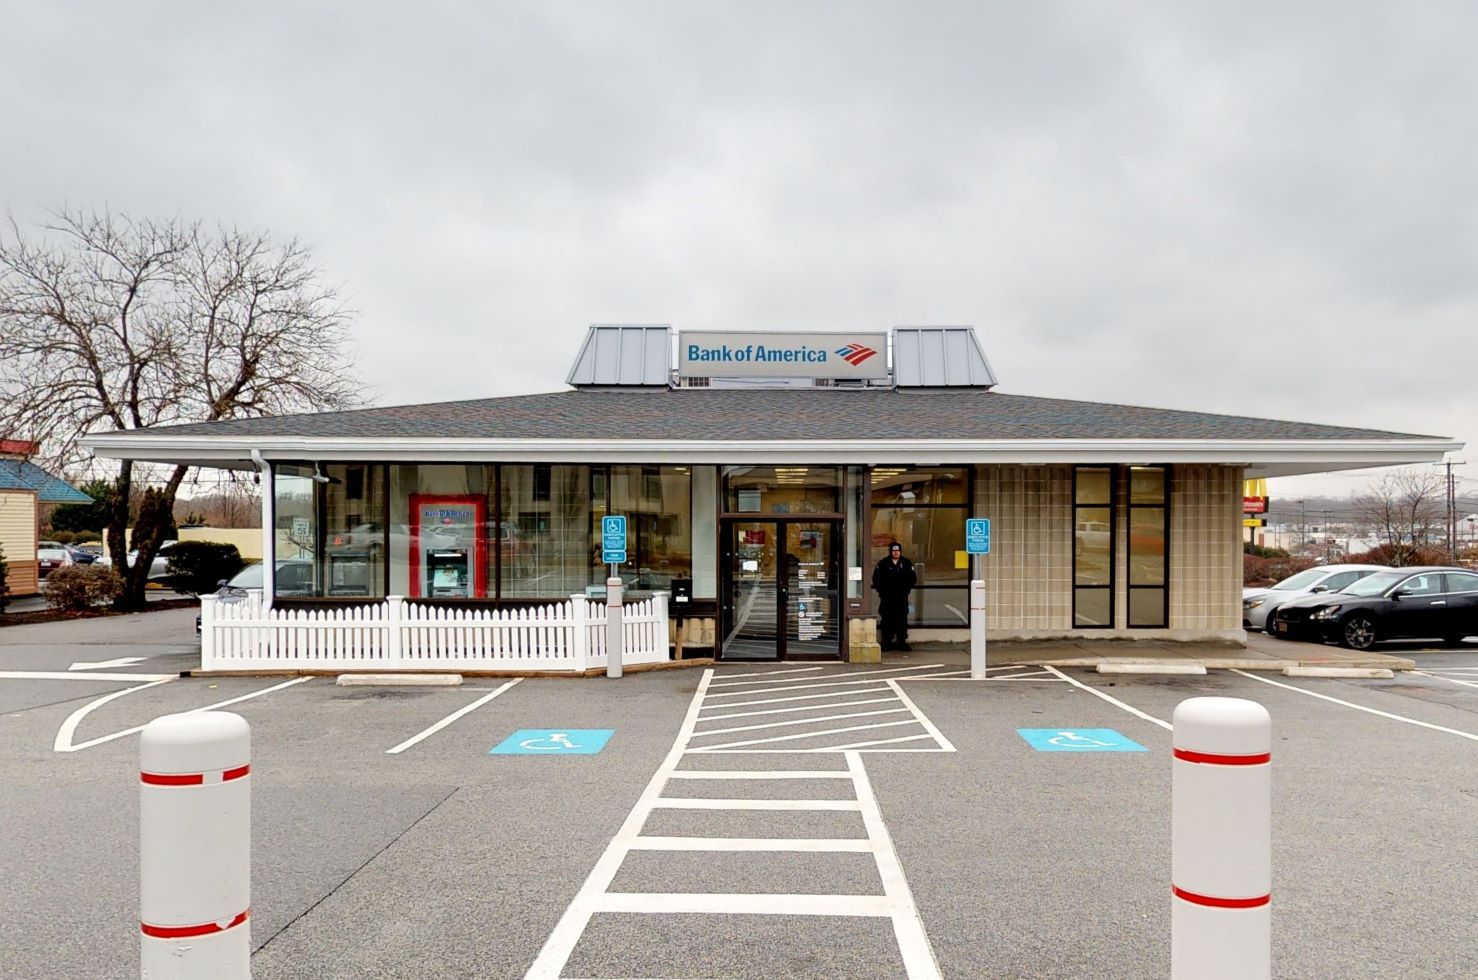 Bank of America financial center with drive-thru ATM   1021 Fall River Ave, Seekonk, MA 02771